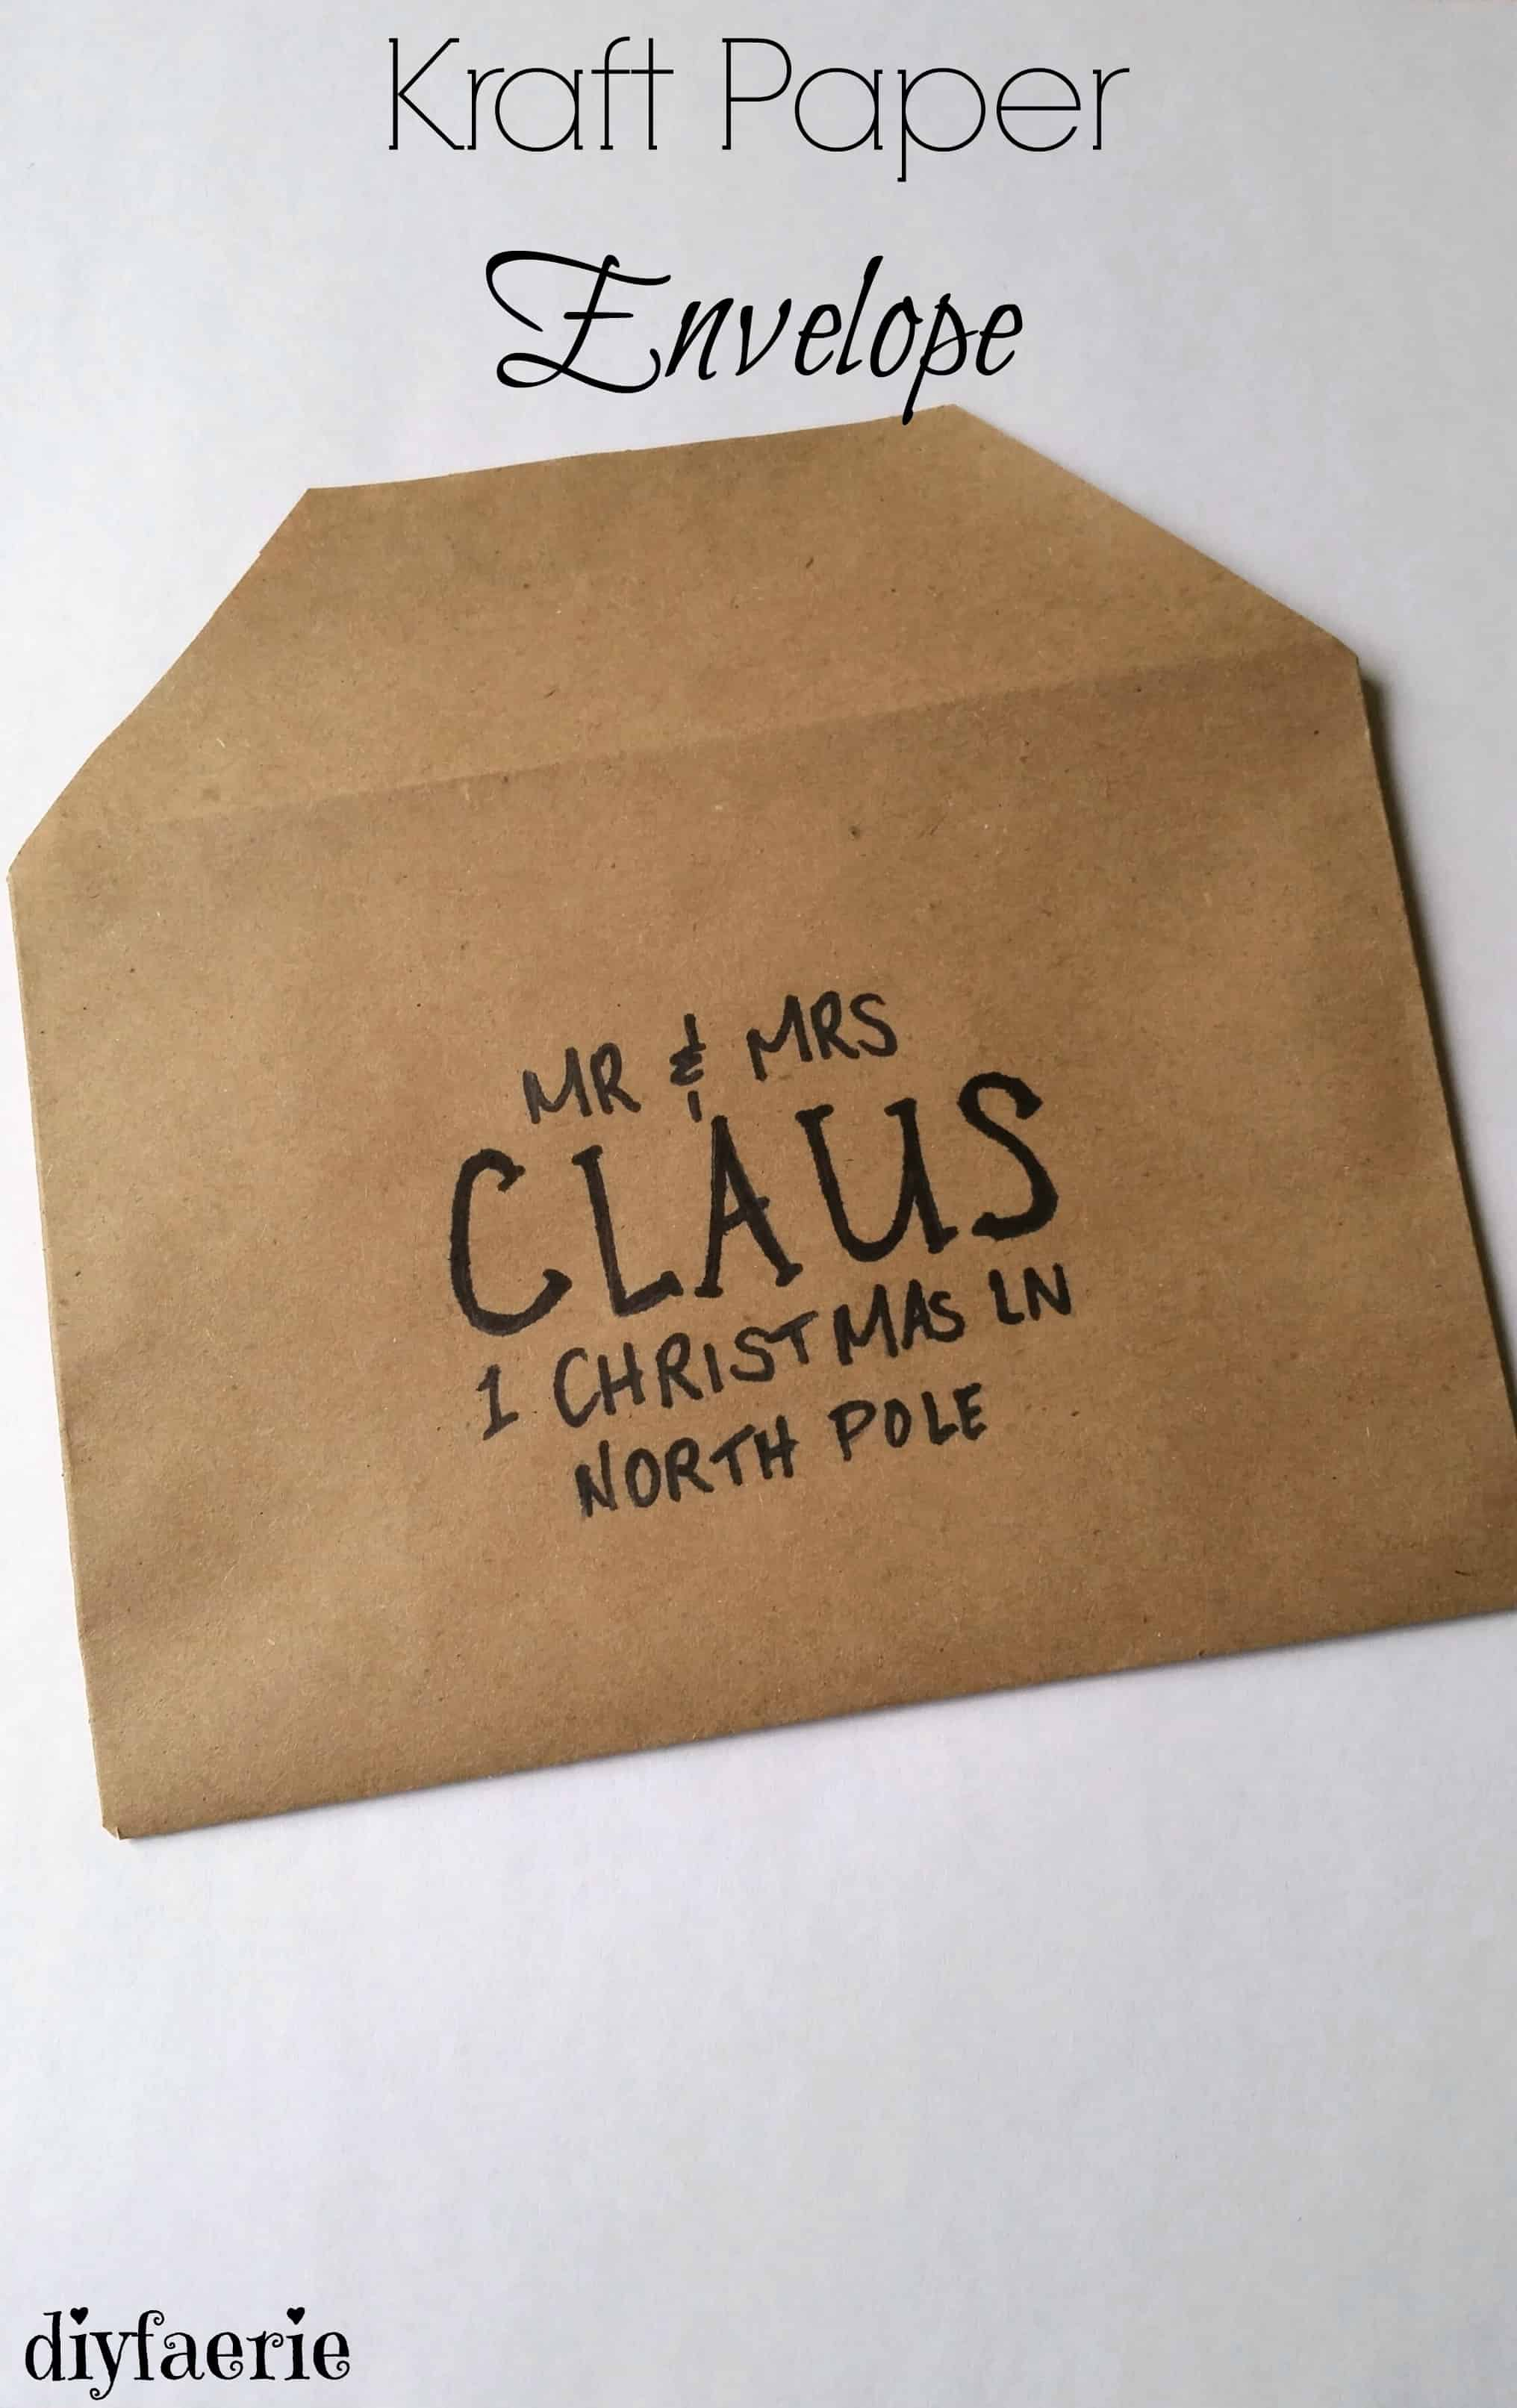 Kraft paper makes beautiful diy homemade envelopes for your Christmas cards!